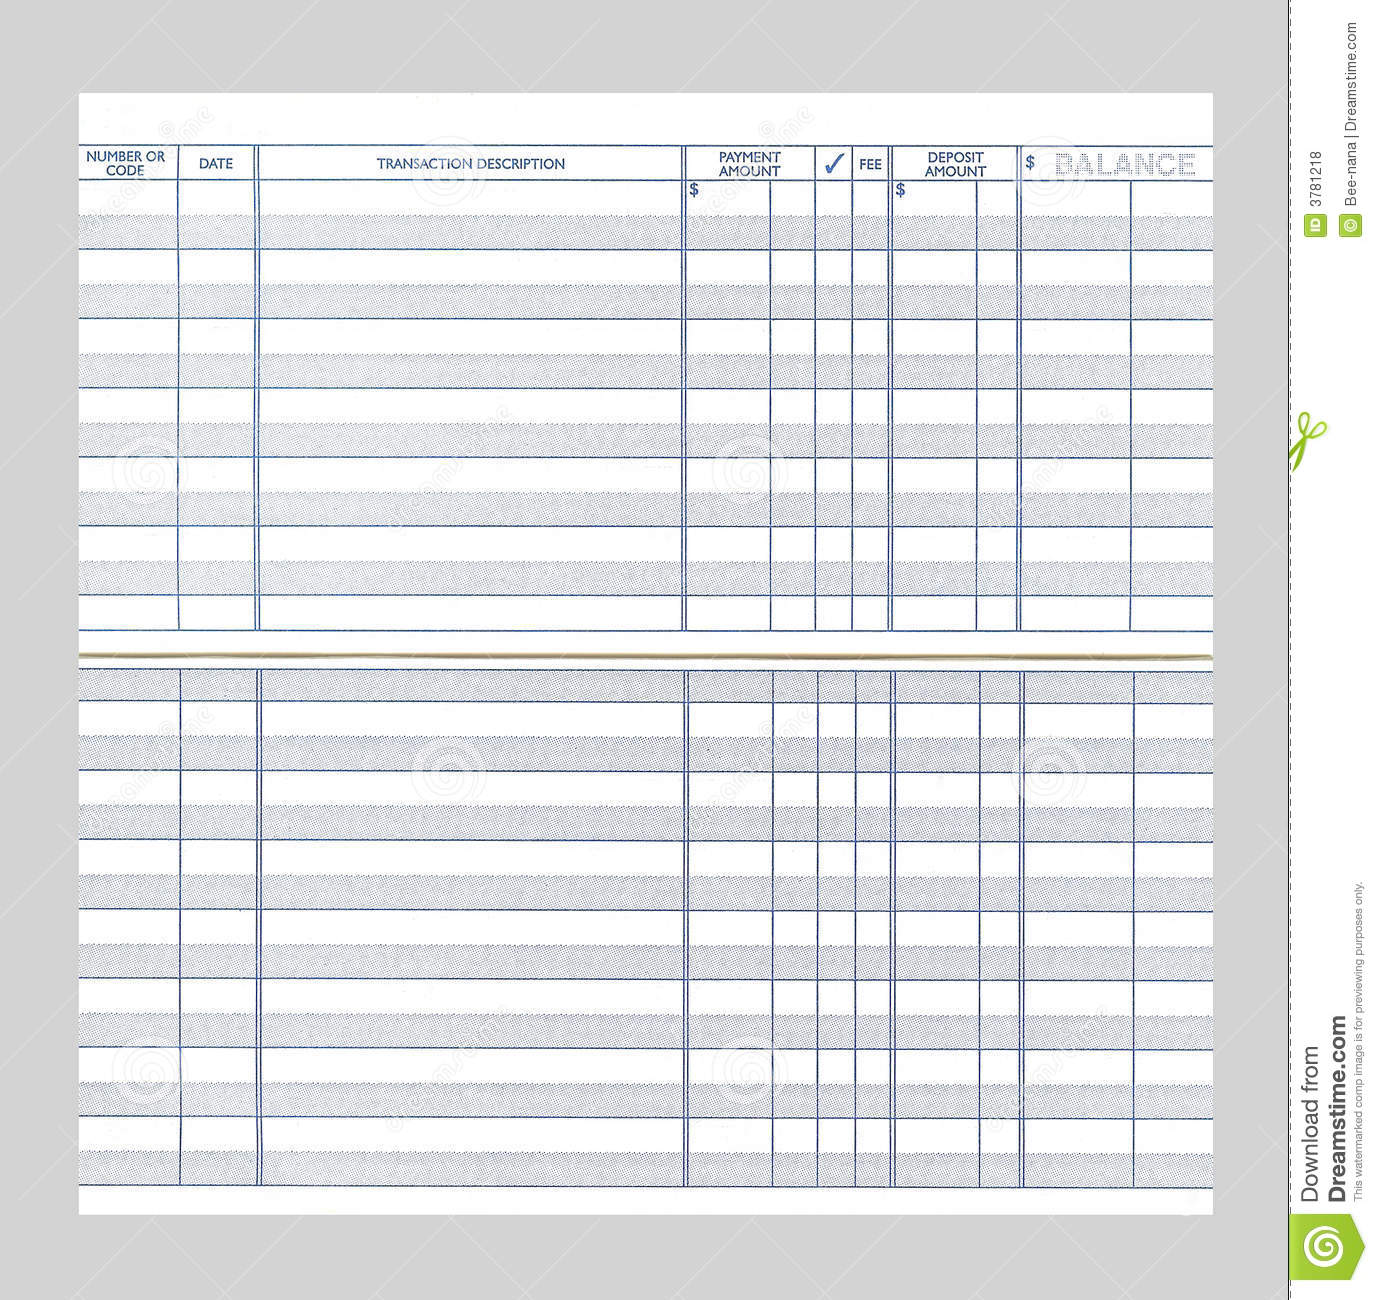 picture about Printable Checkbook Ledger referred to as Blank Checkbook Sign up inventory picture. Impression of sign-up